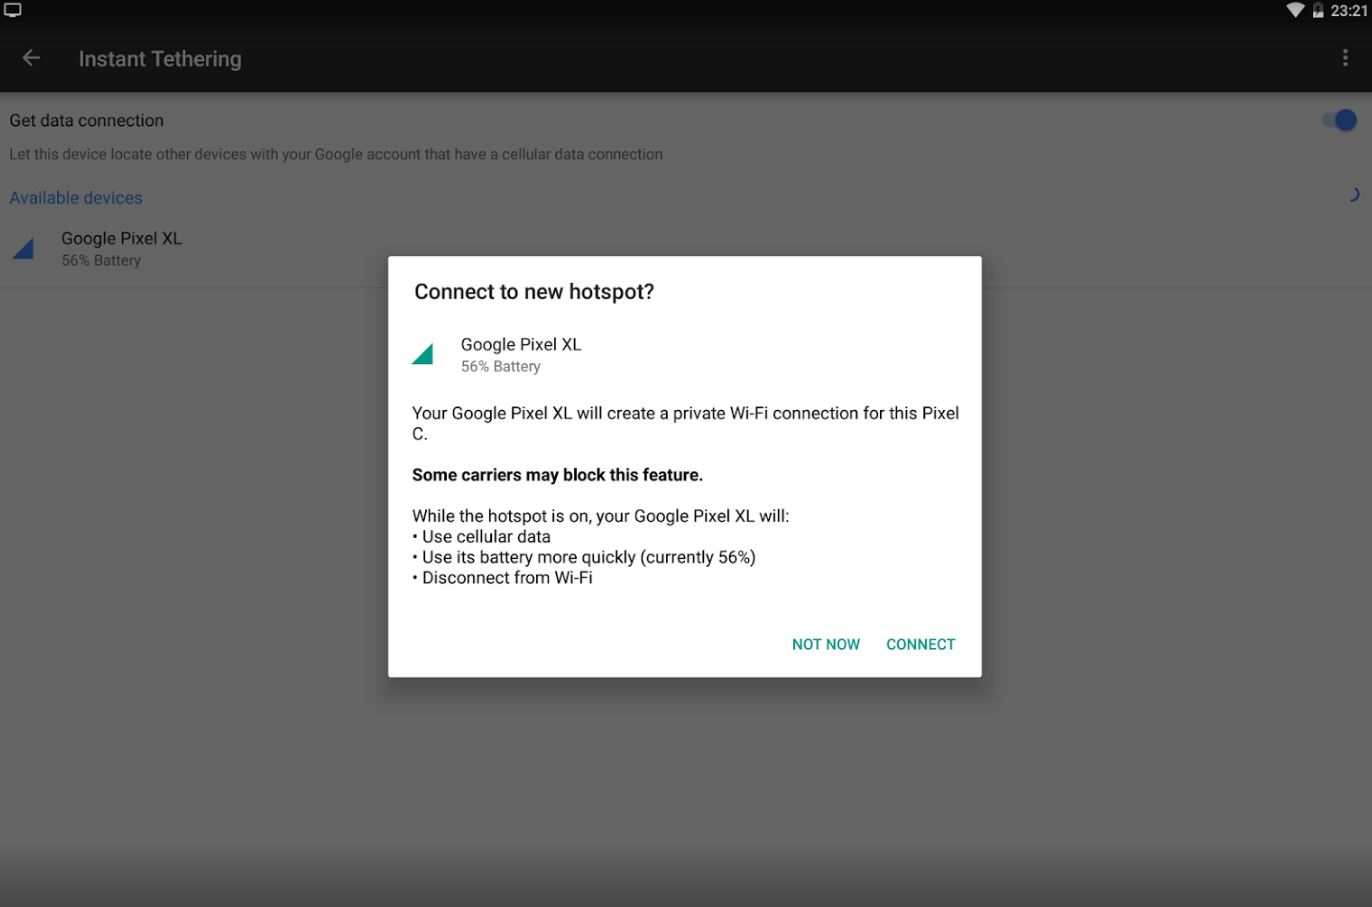 Google Play Services 10.2 with Instant Tethering